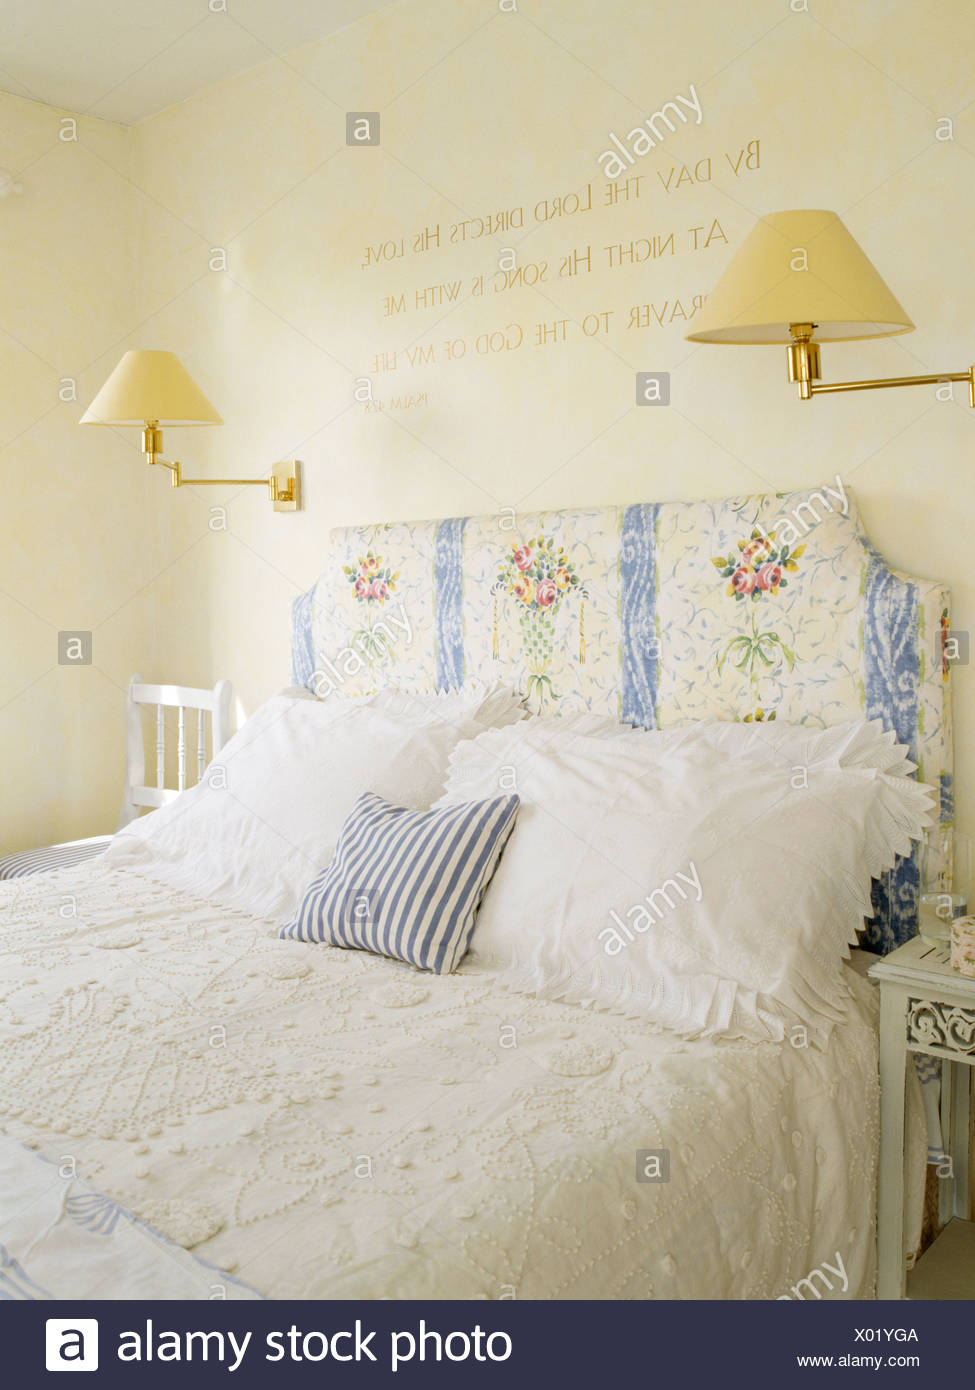 Floral Patterned Headboard On Bed With Lace Bed Cover And